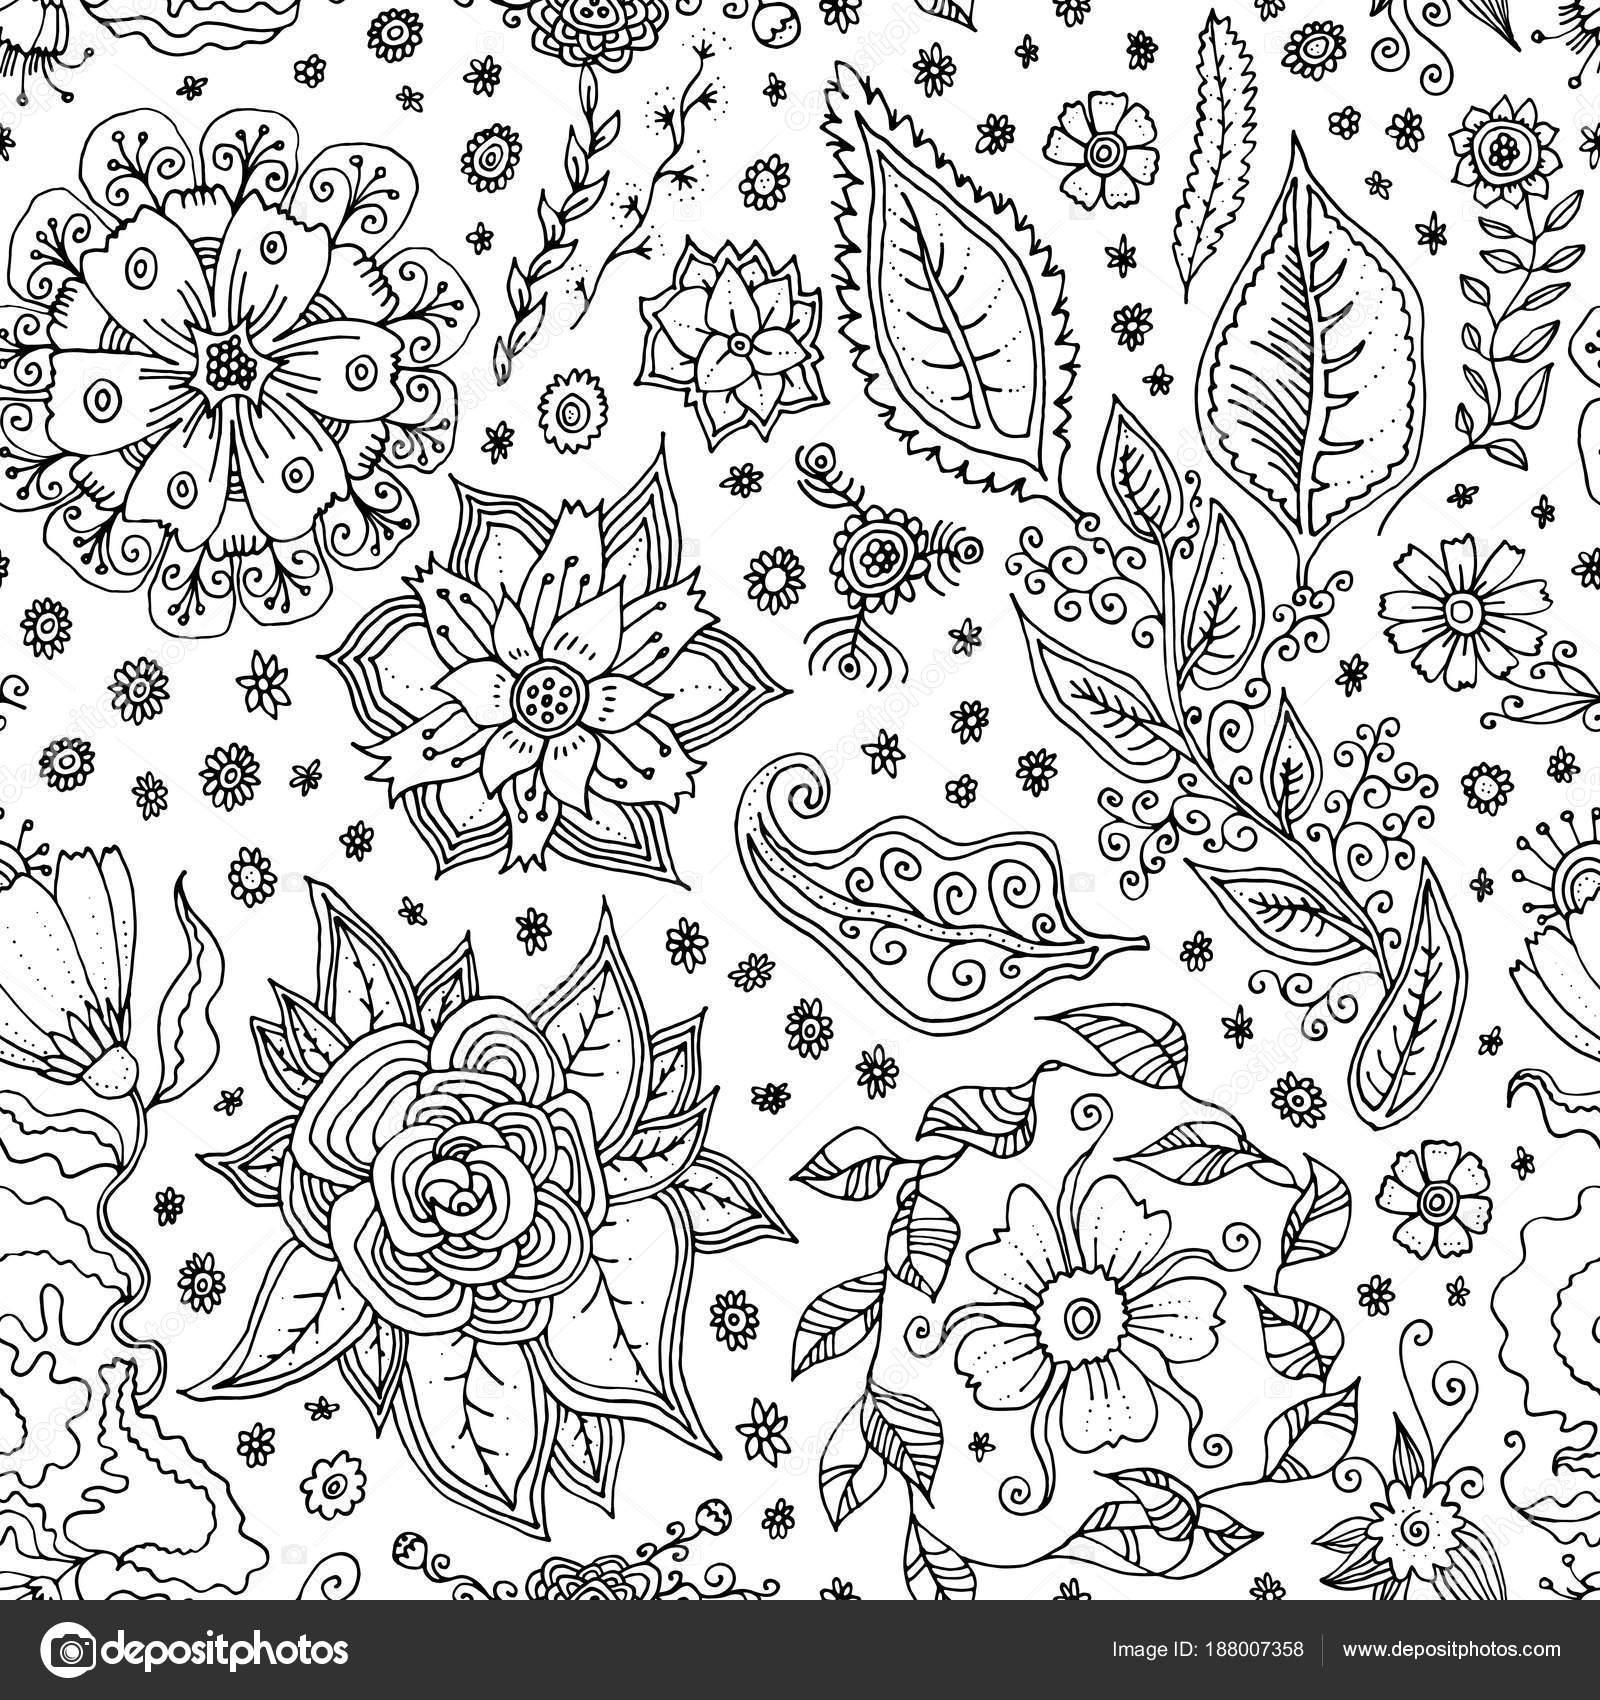 Vector Seamless Pattern Spring Flowers Black White Hand Drawn Floral